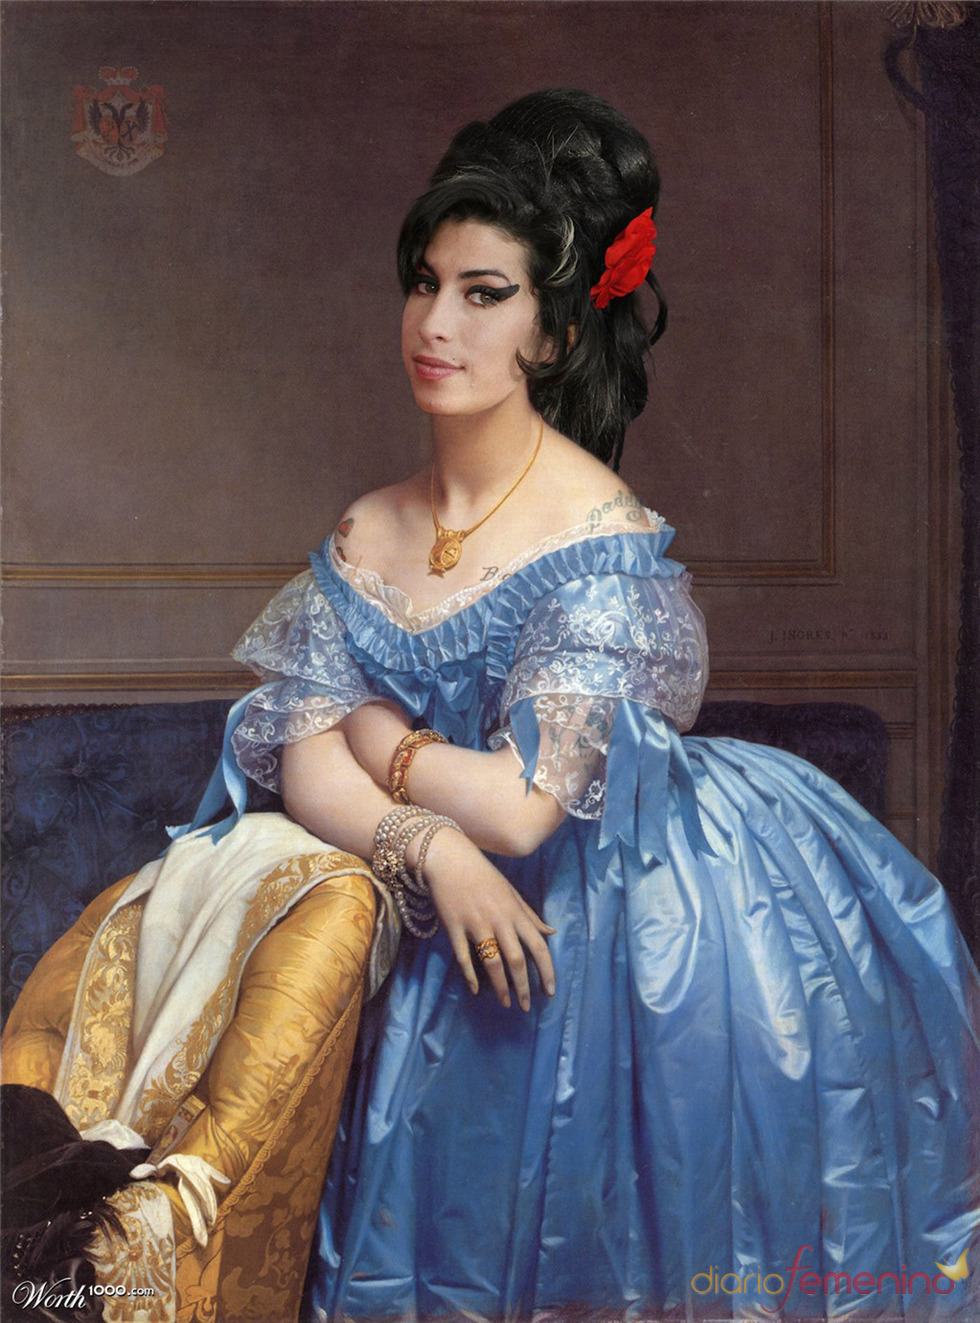 Amy Winehouse convertida en arte clásico en Worth1000.com